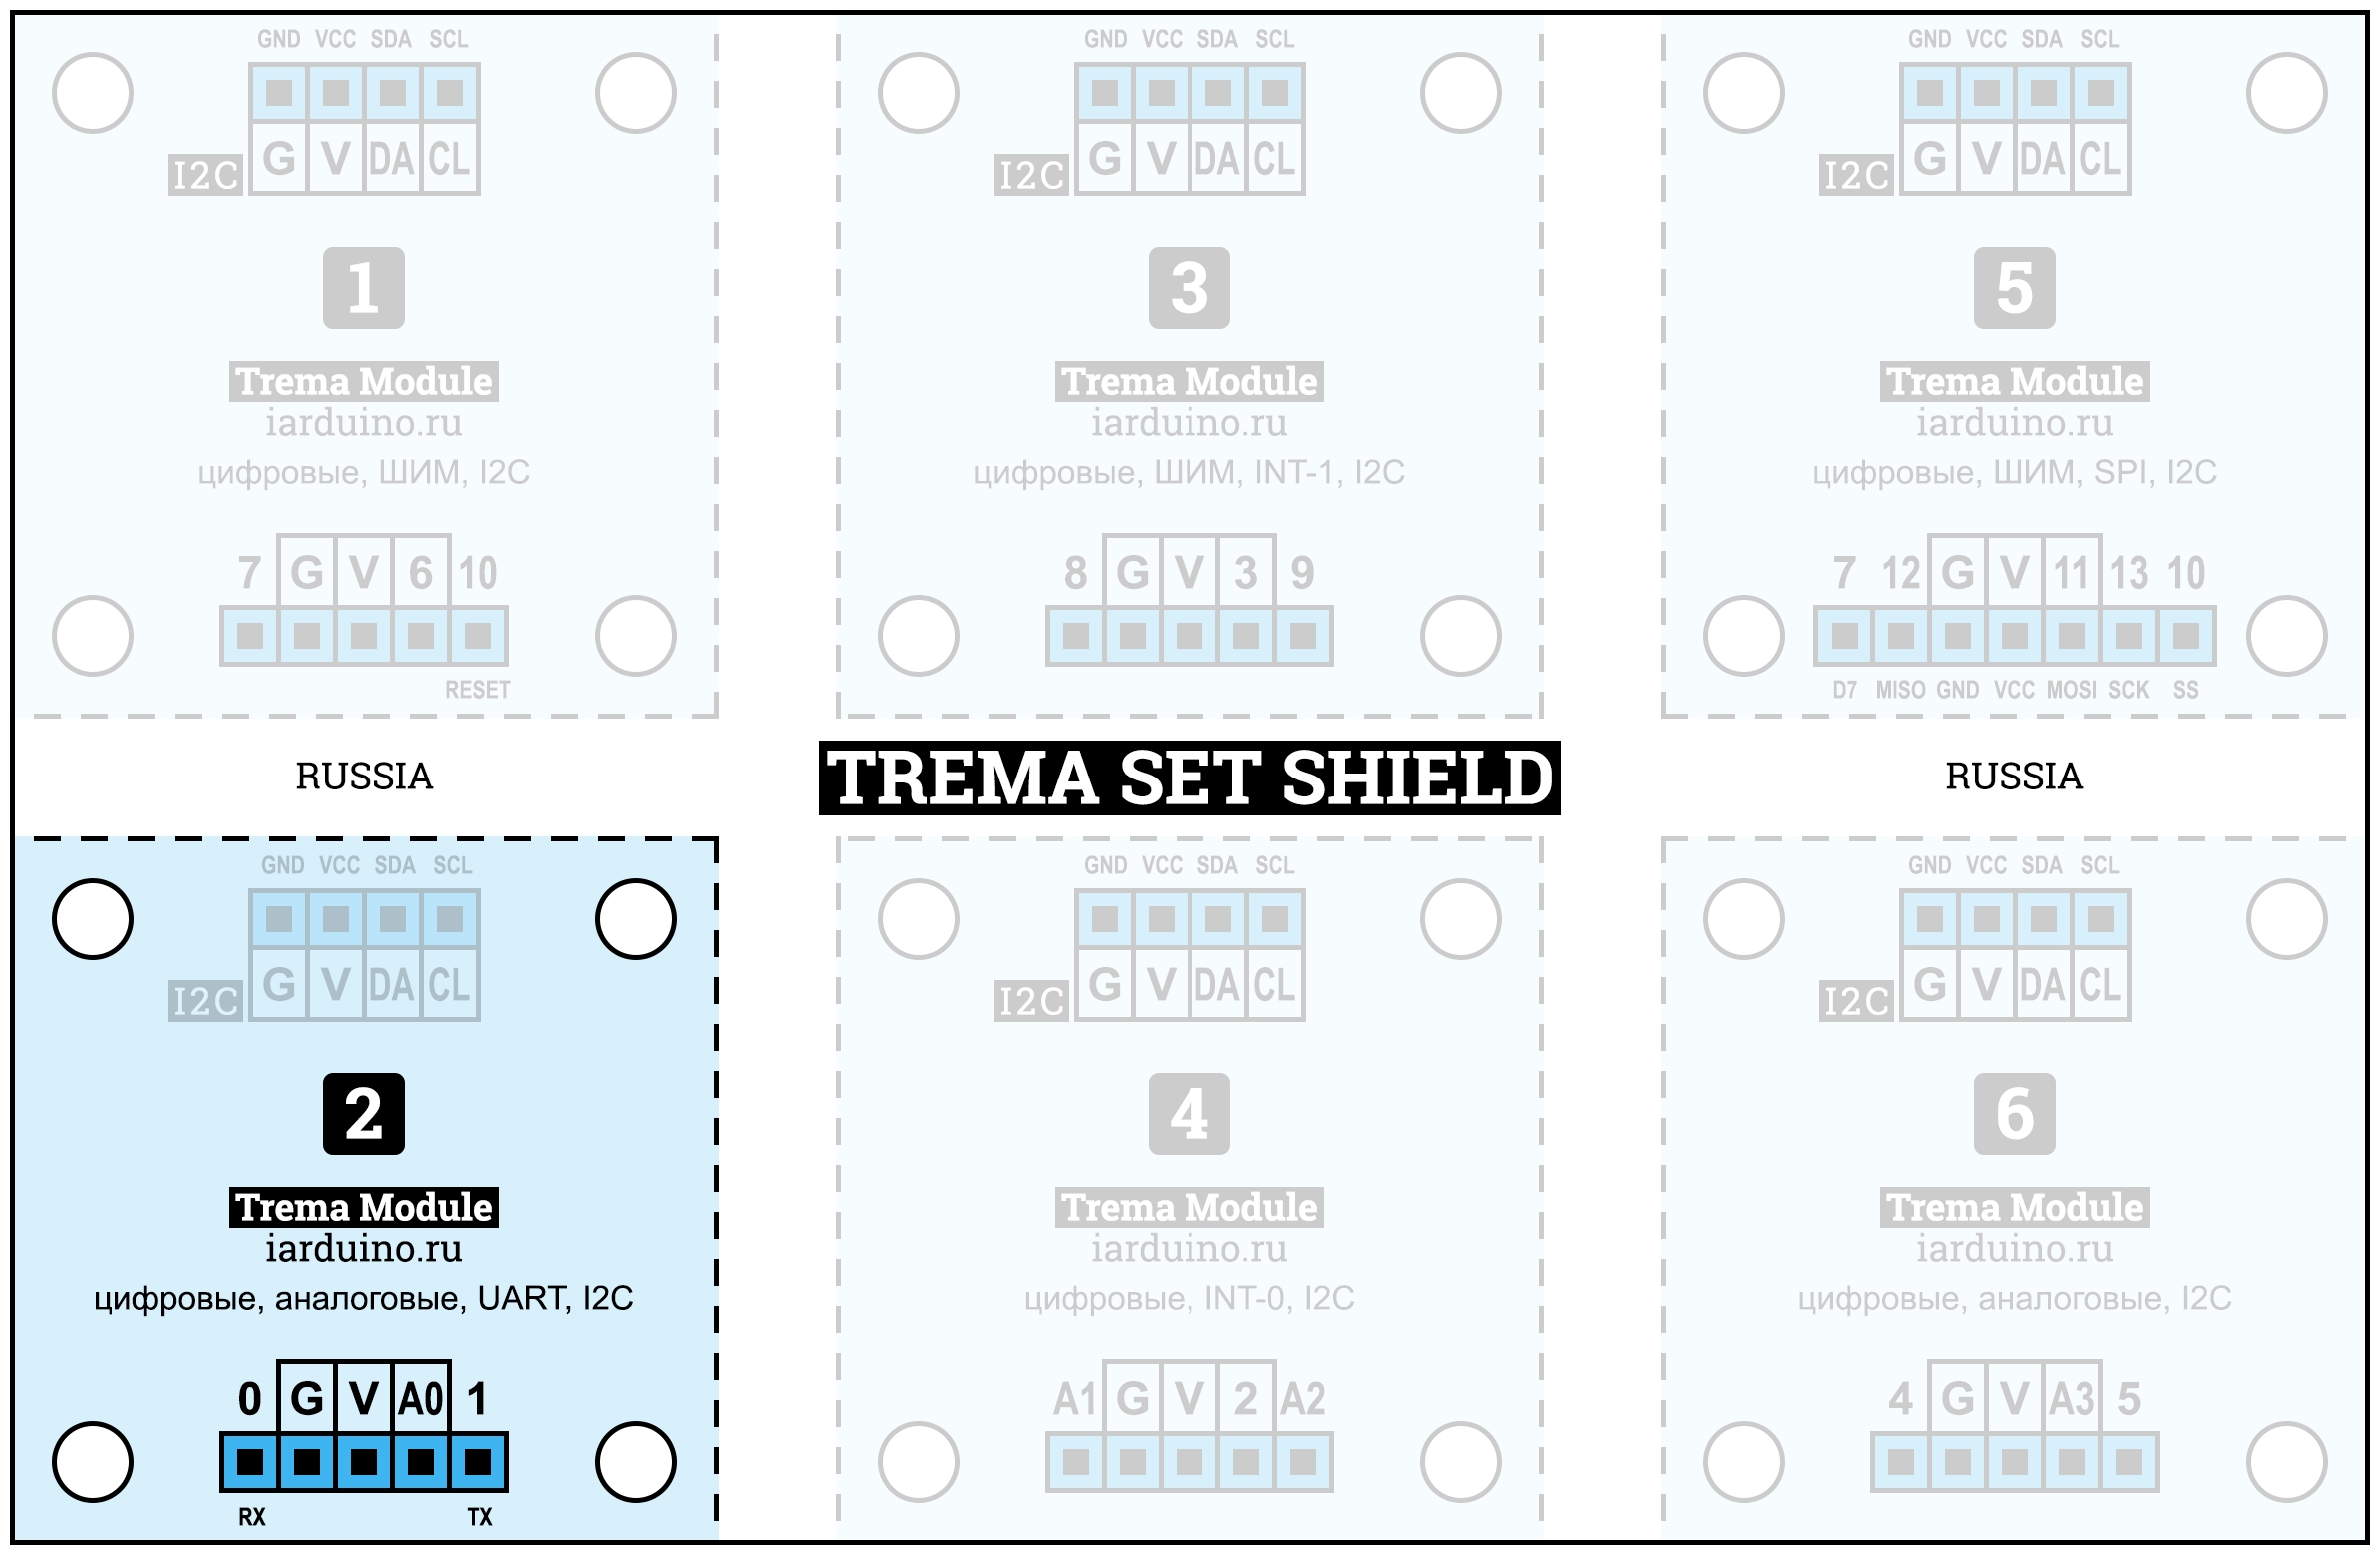 Схема подключения модулей к Trema Set Shield по аппаратной шине UART